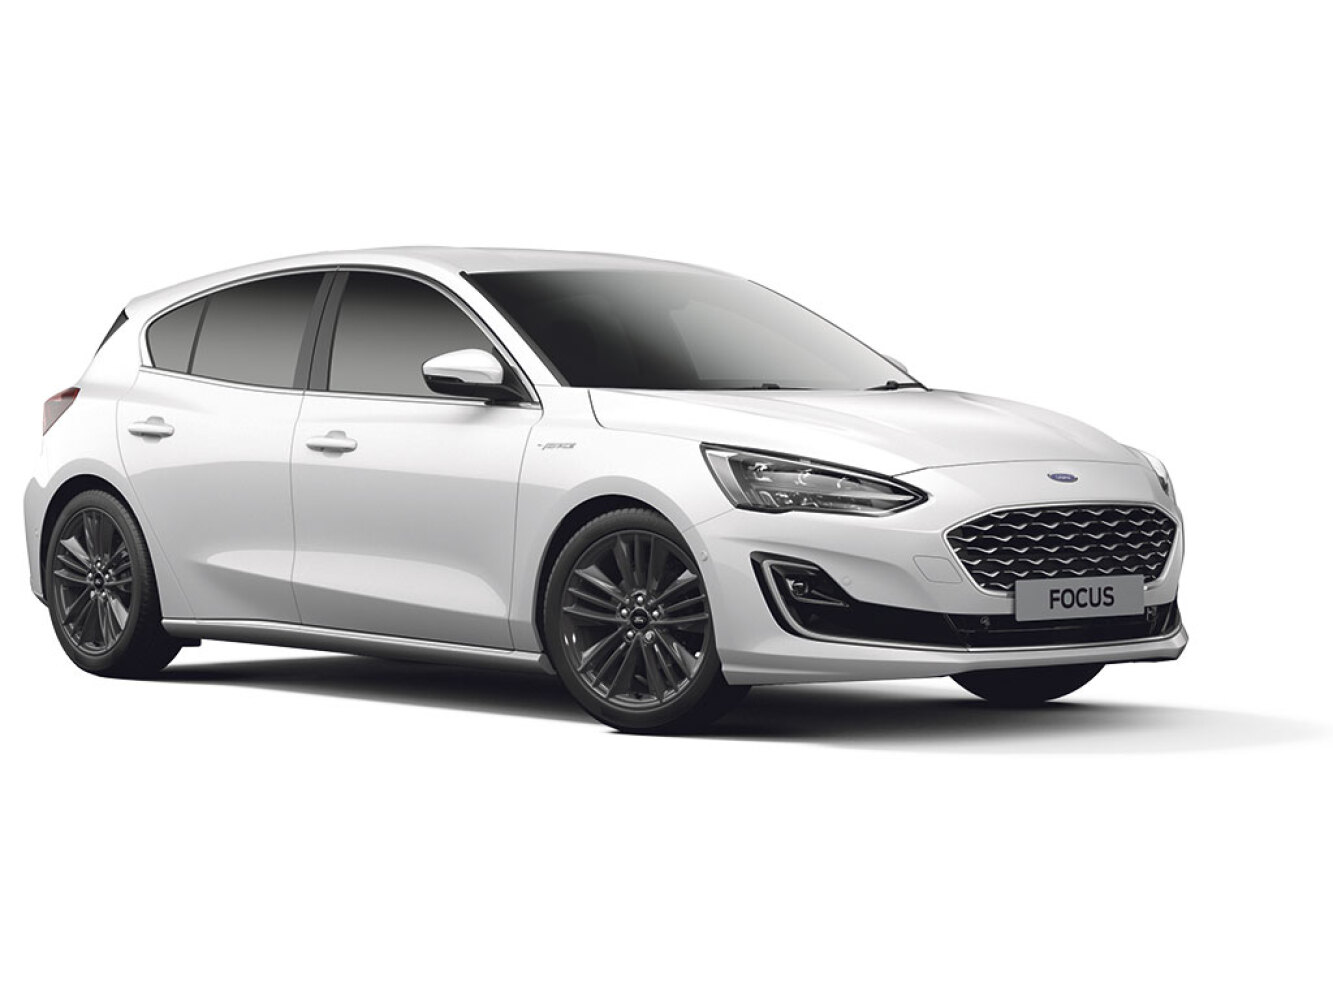 new ford focus vignale 1 5 ecoboost 182 5dr petrol estate. Black Bedroom Furniture Sets. Home Design Ideas